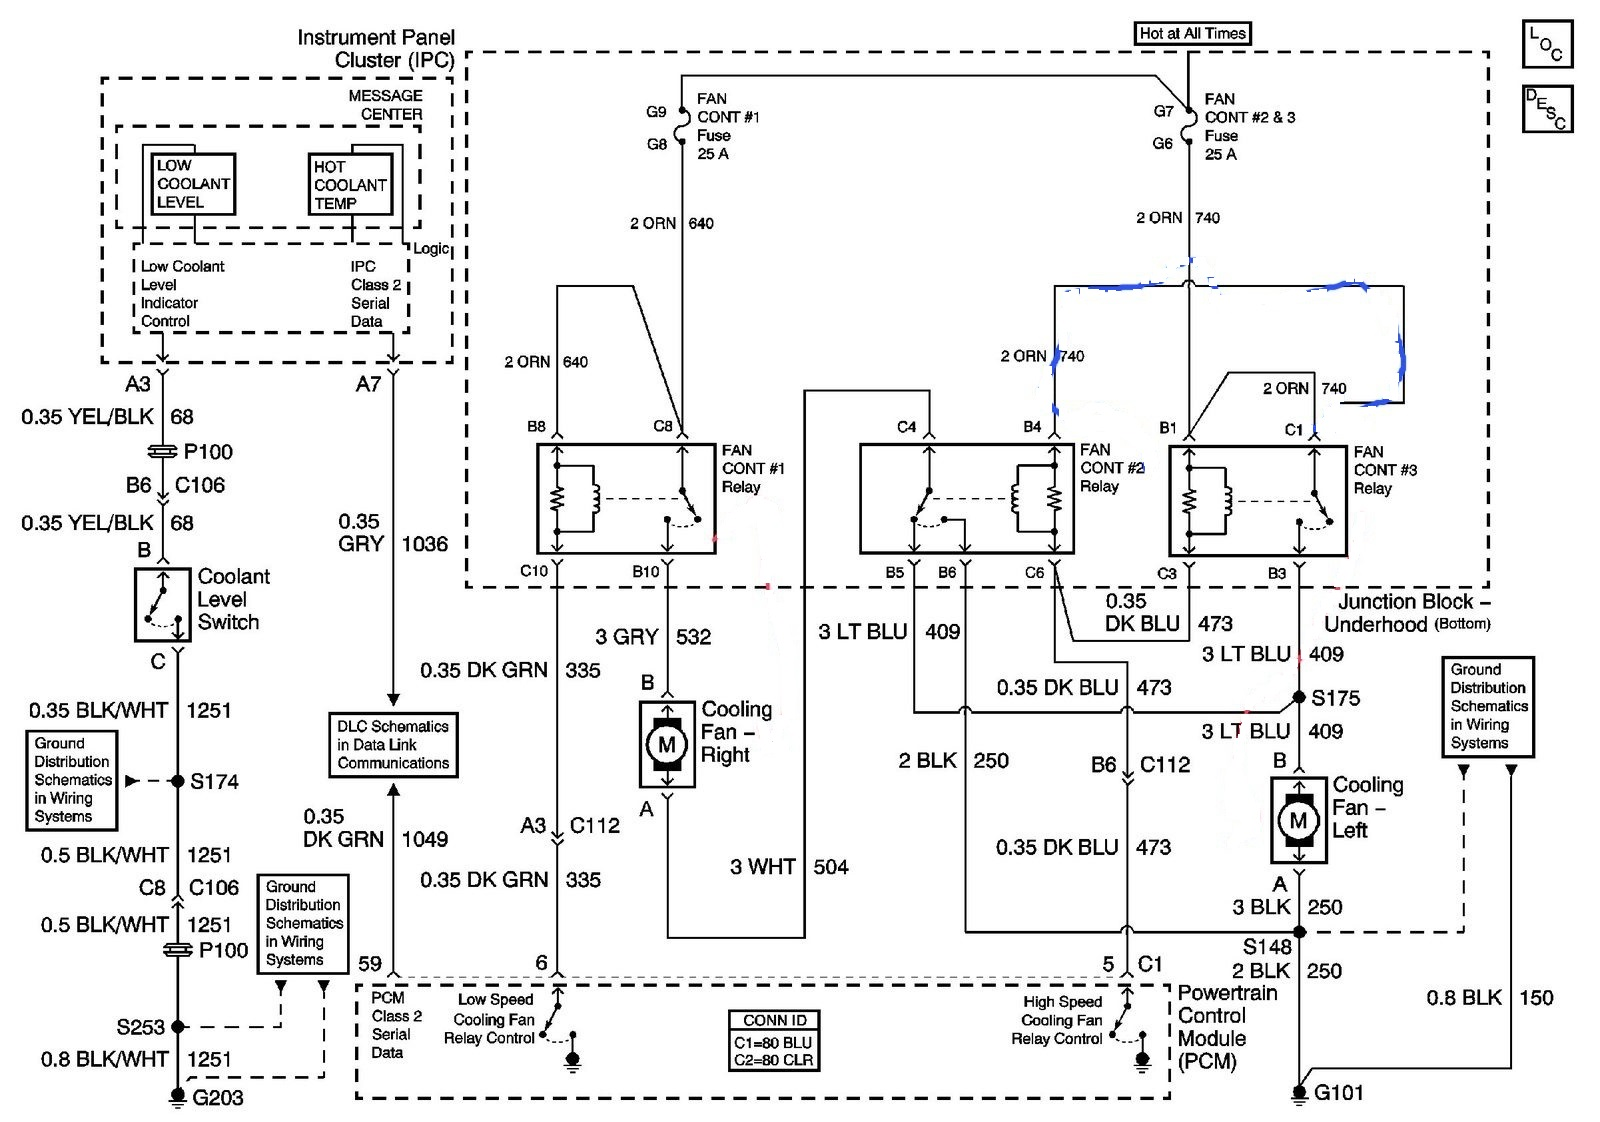 2009 chevrolet impala wiring diagram - wiring diagram options wave-trend-a  - wave-trend-a.studiopyxis.it  pyxis